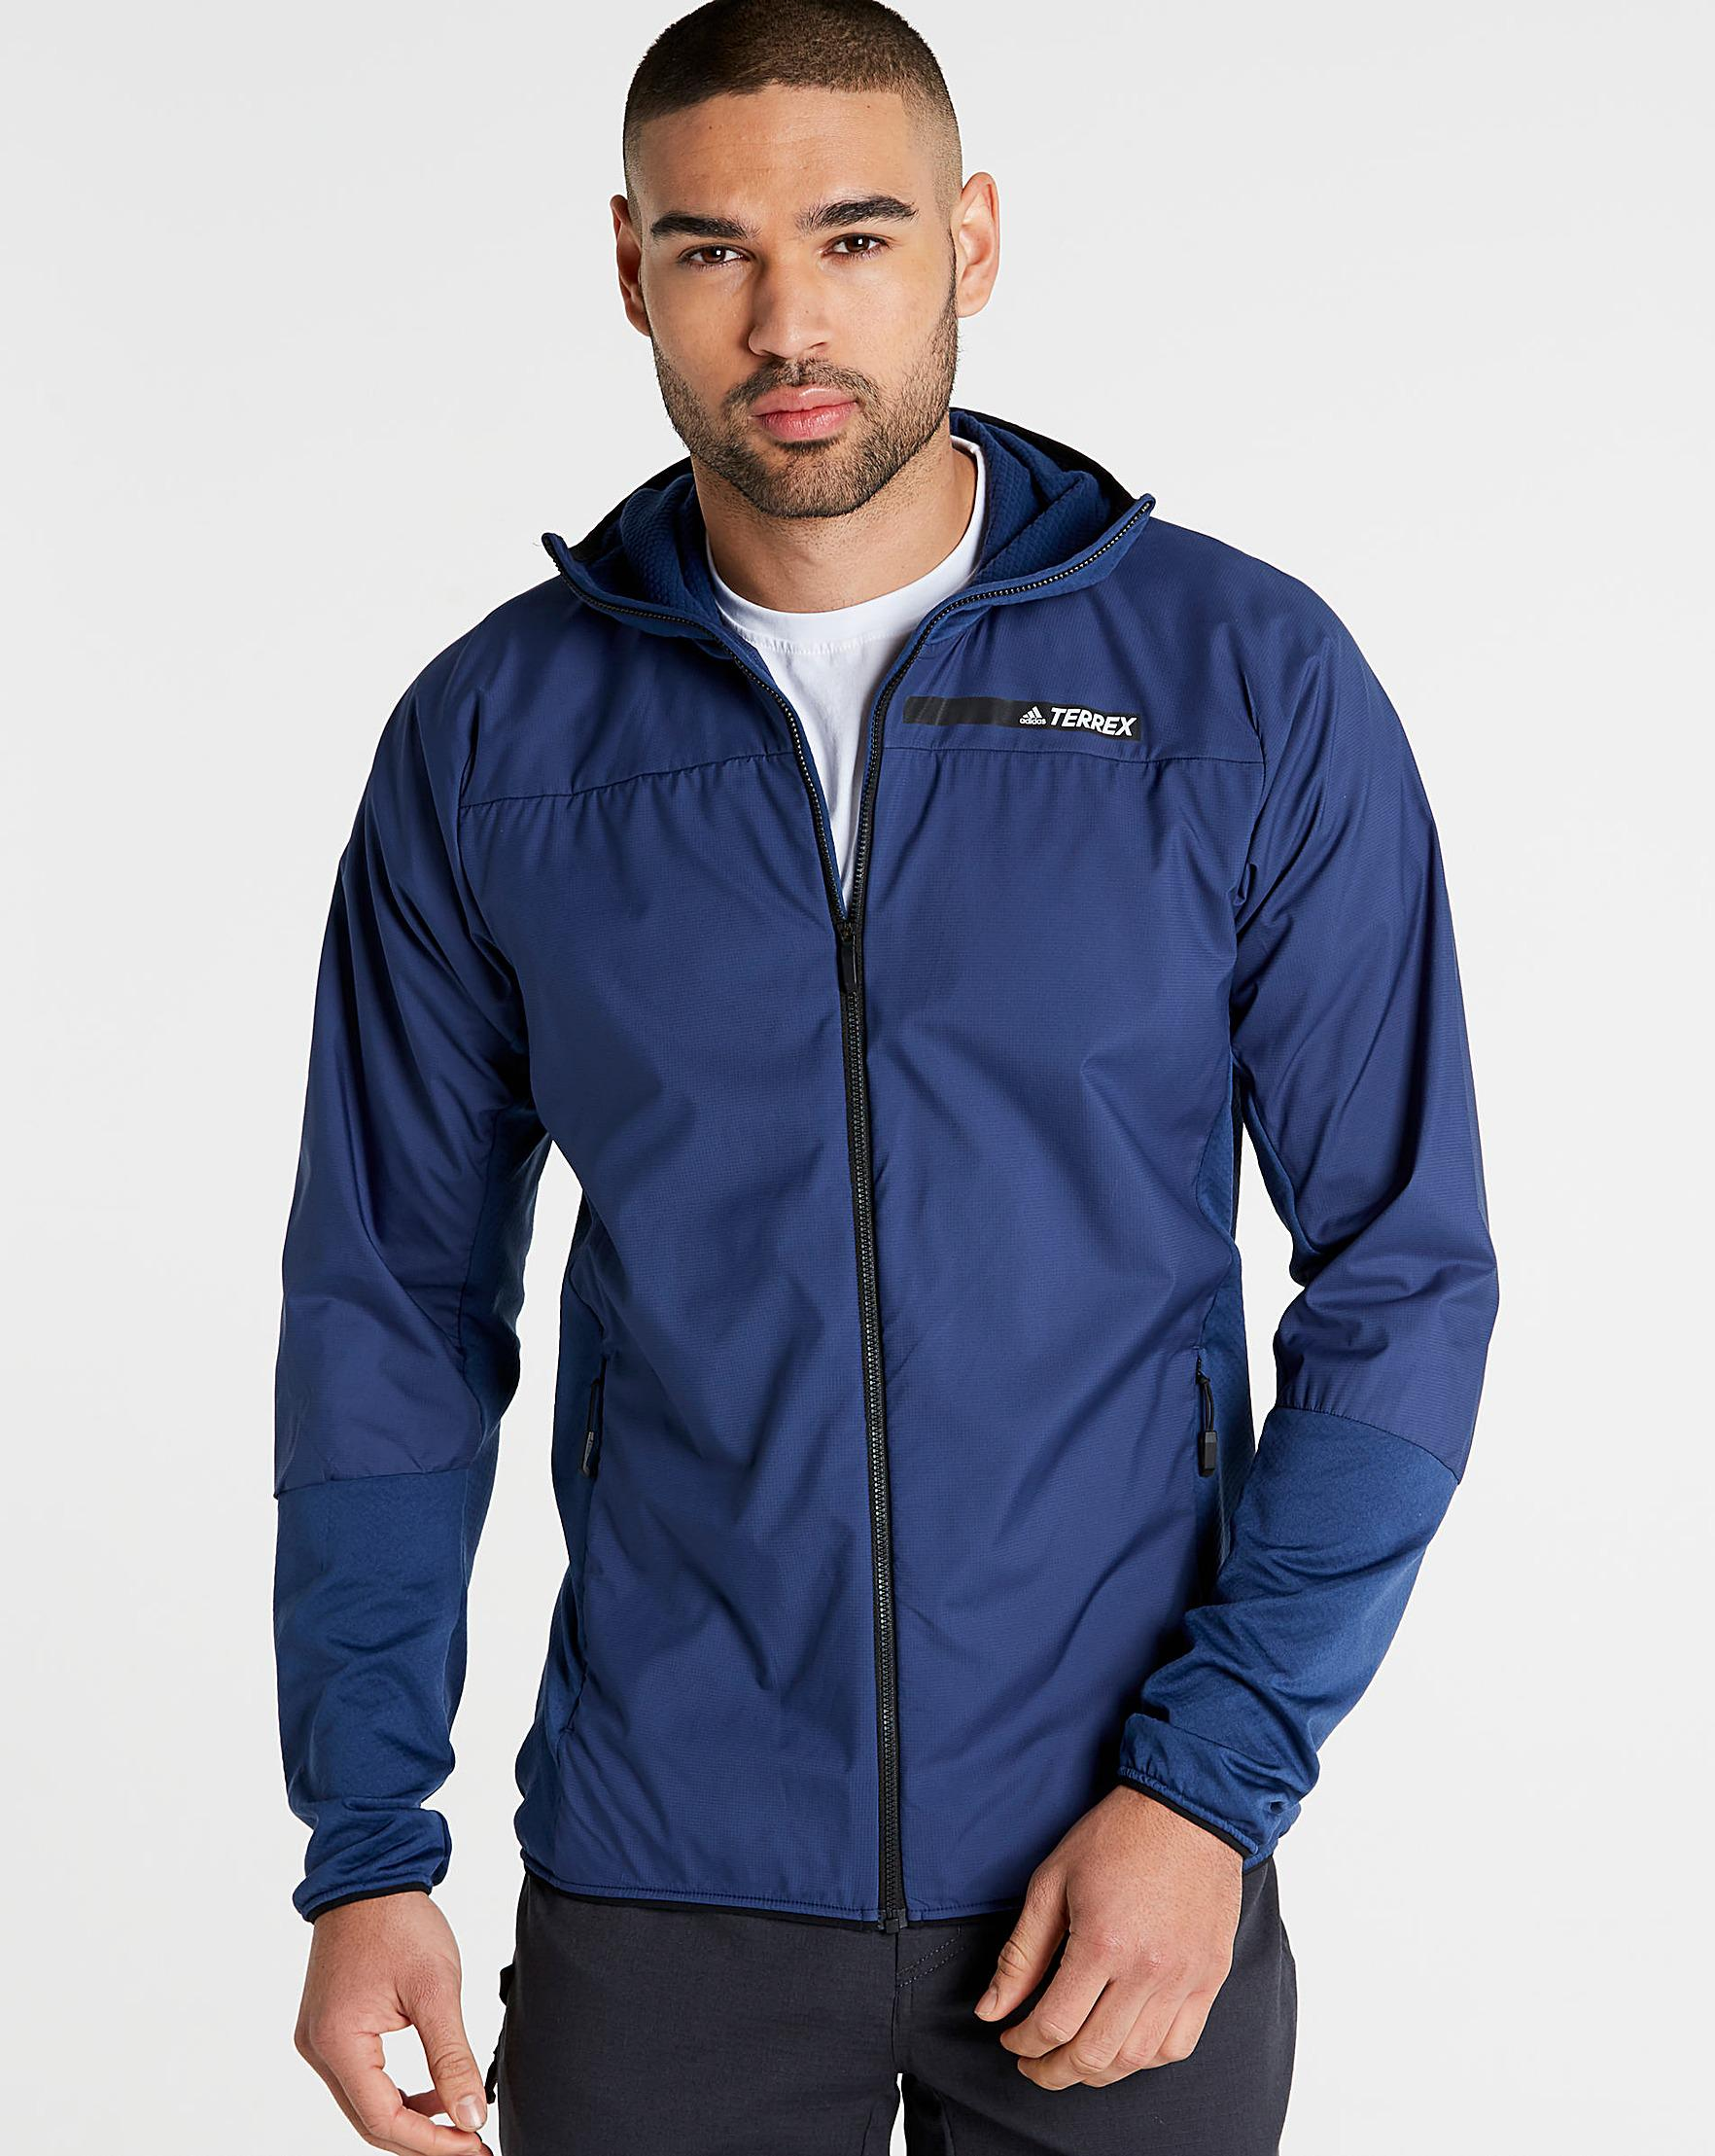 058d1d679 adidas Terrex Skyclimb Jacket in Blue for Men - Lyst